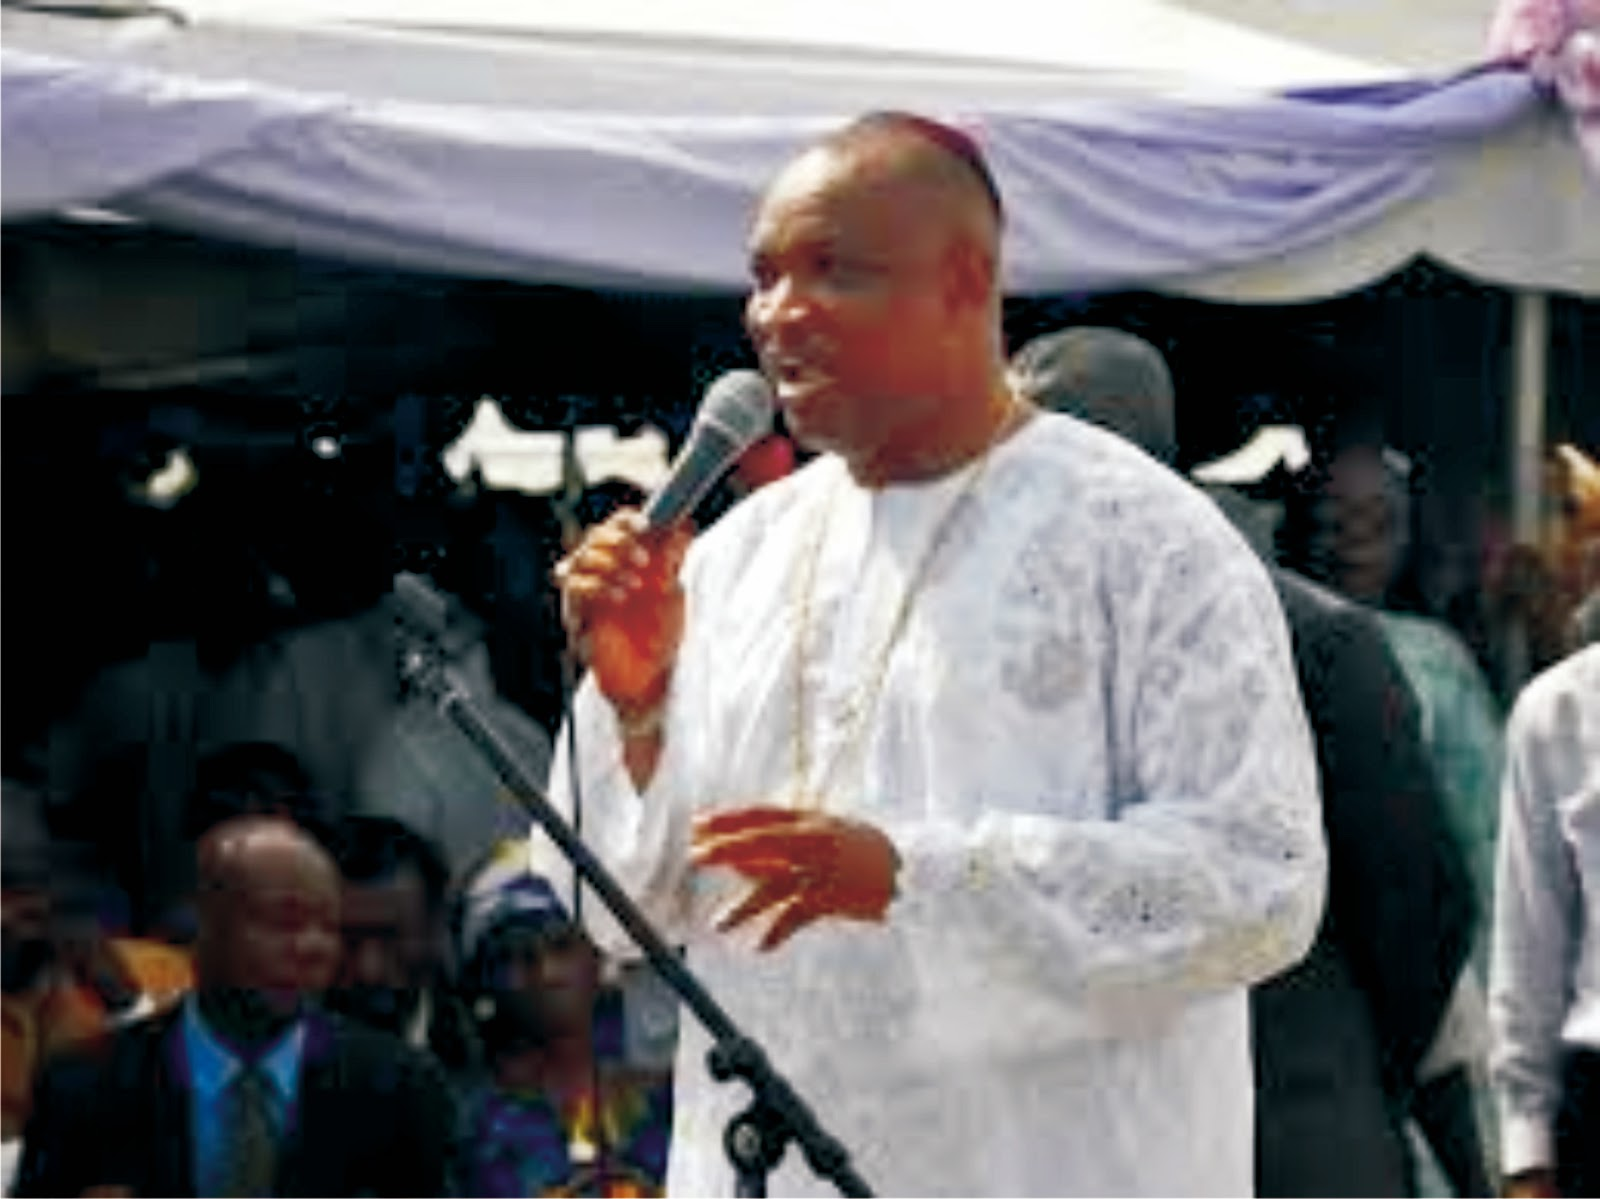 Town Hall Meeting: People should tell Akpabio the truth—Cletus Bassey